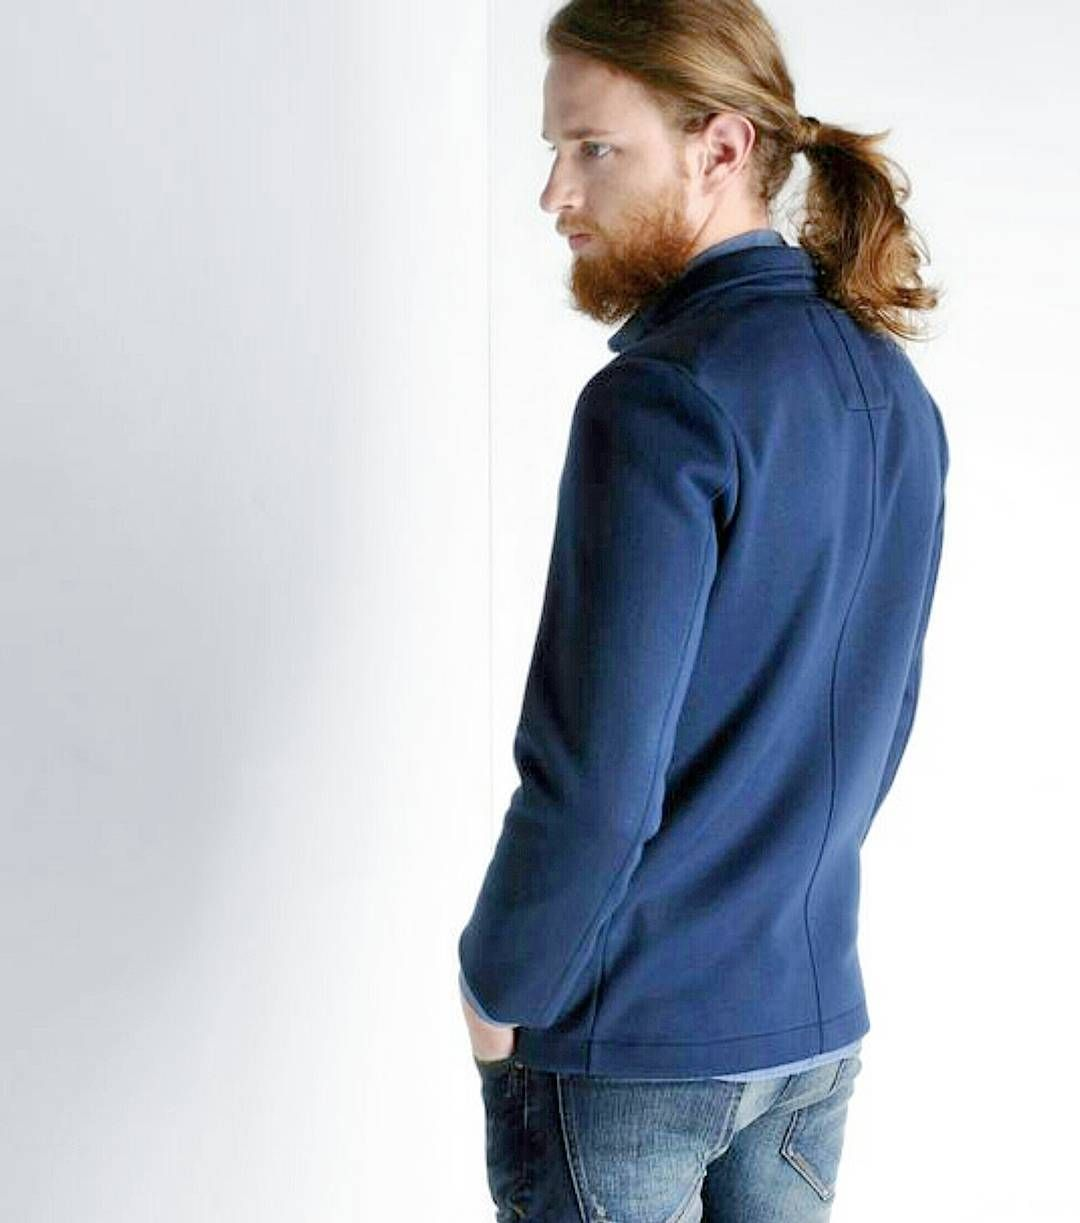 50 Popular Men's Ponytail Hairstyles(Be Different in 2019)